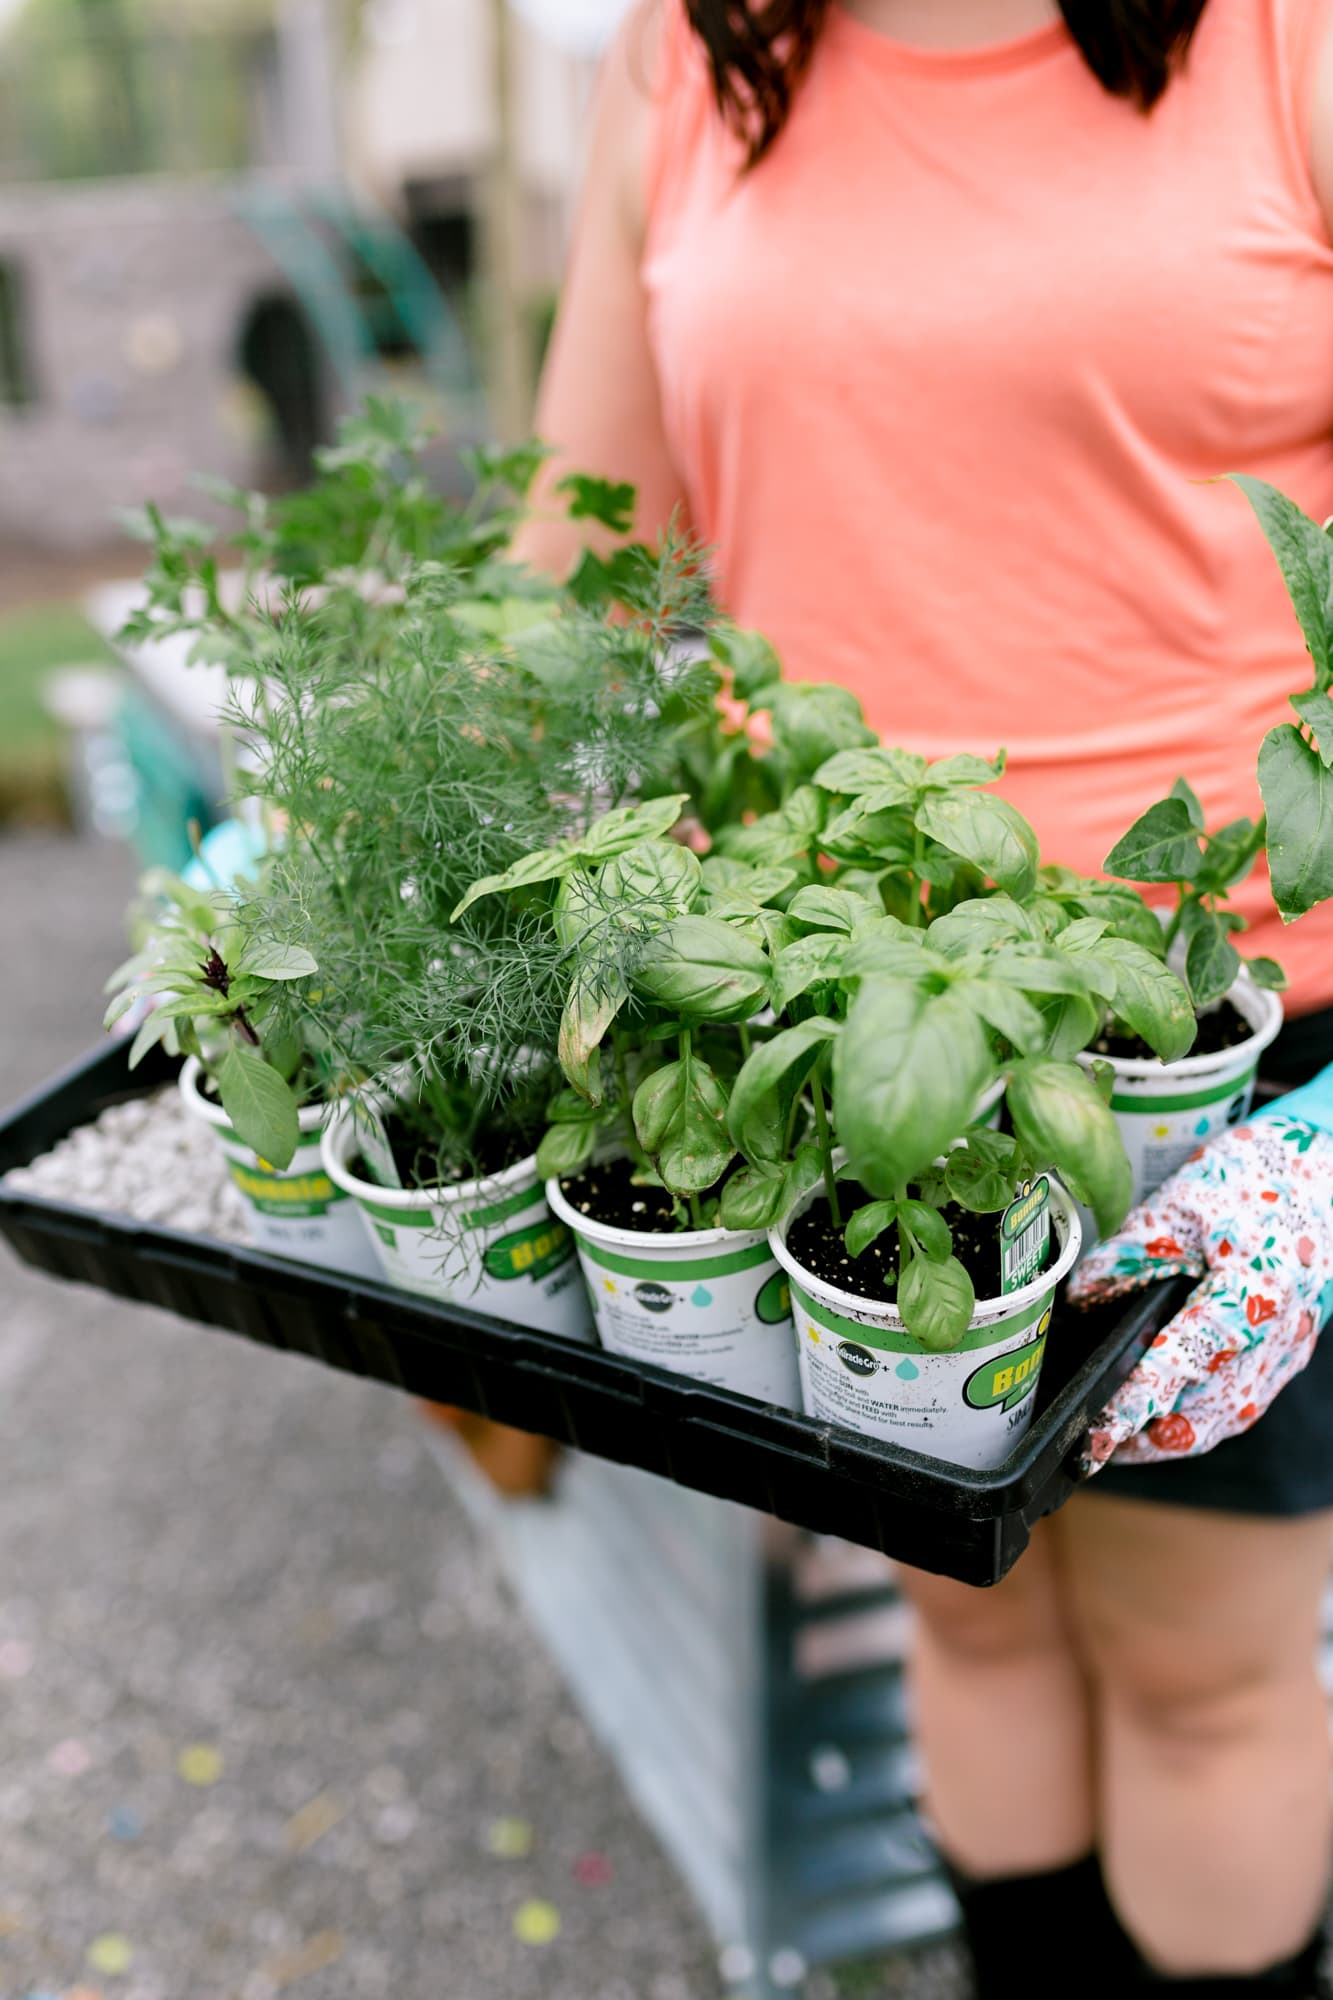 Torso of a woman holding a tray full of seedlings for a vegetable garden